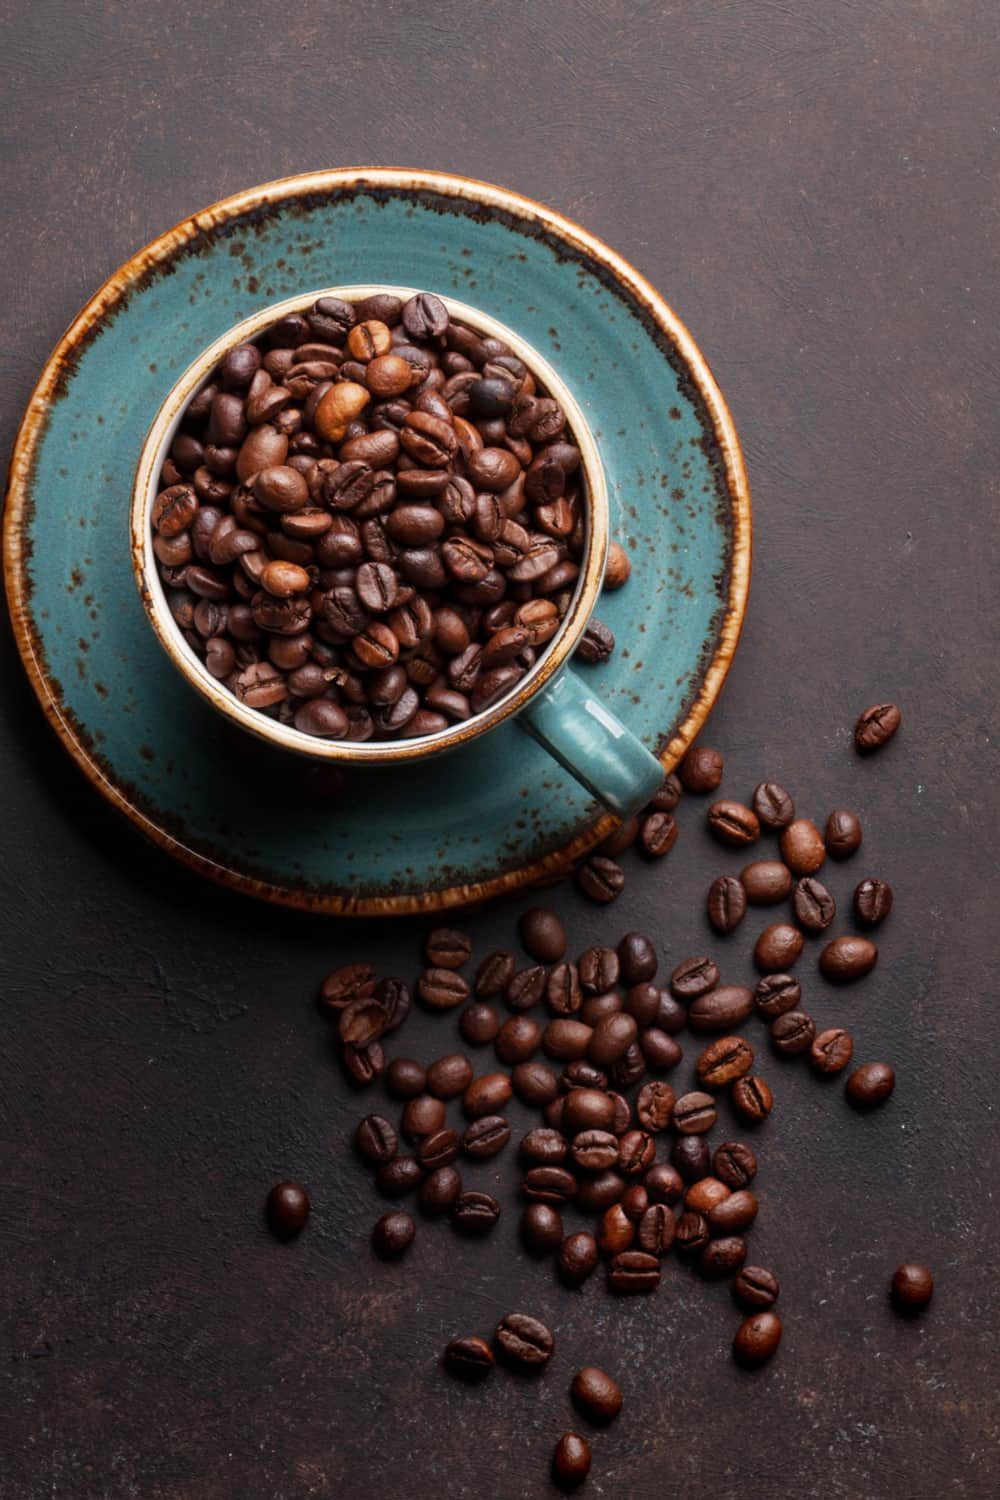 Caffeine – from chewing coffee beans